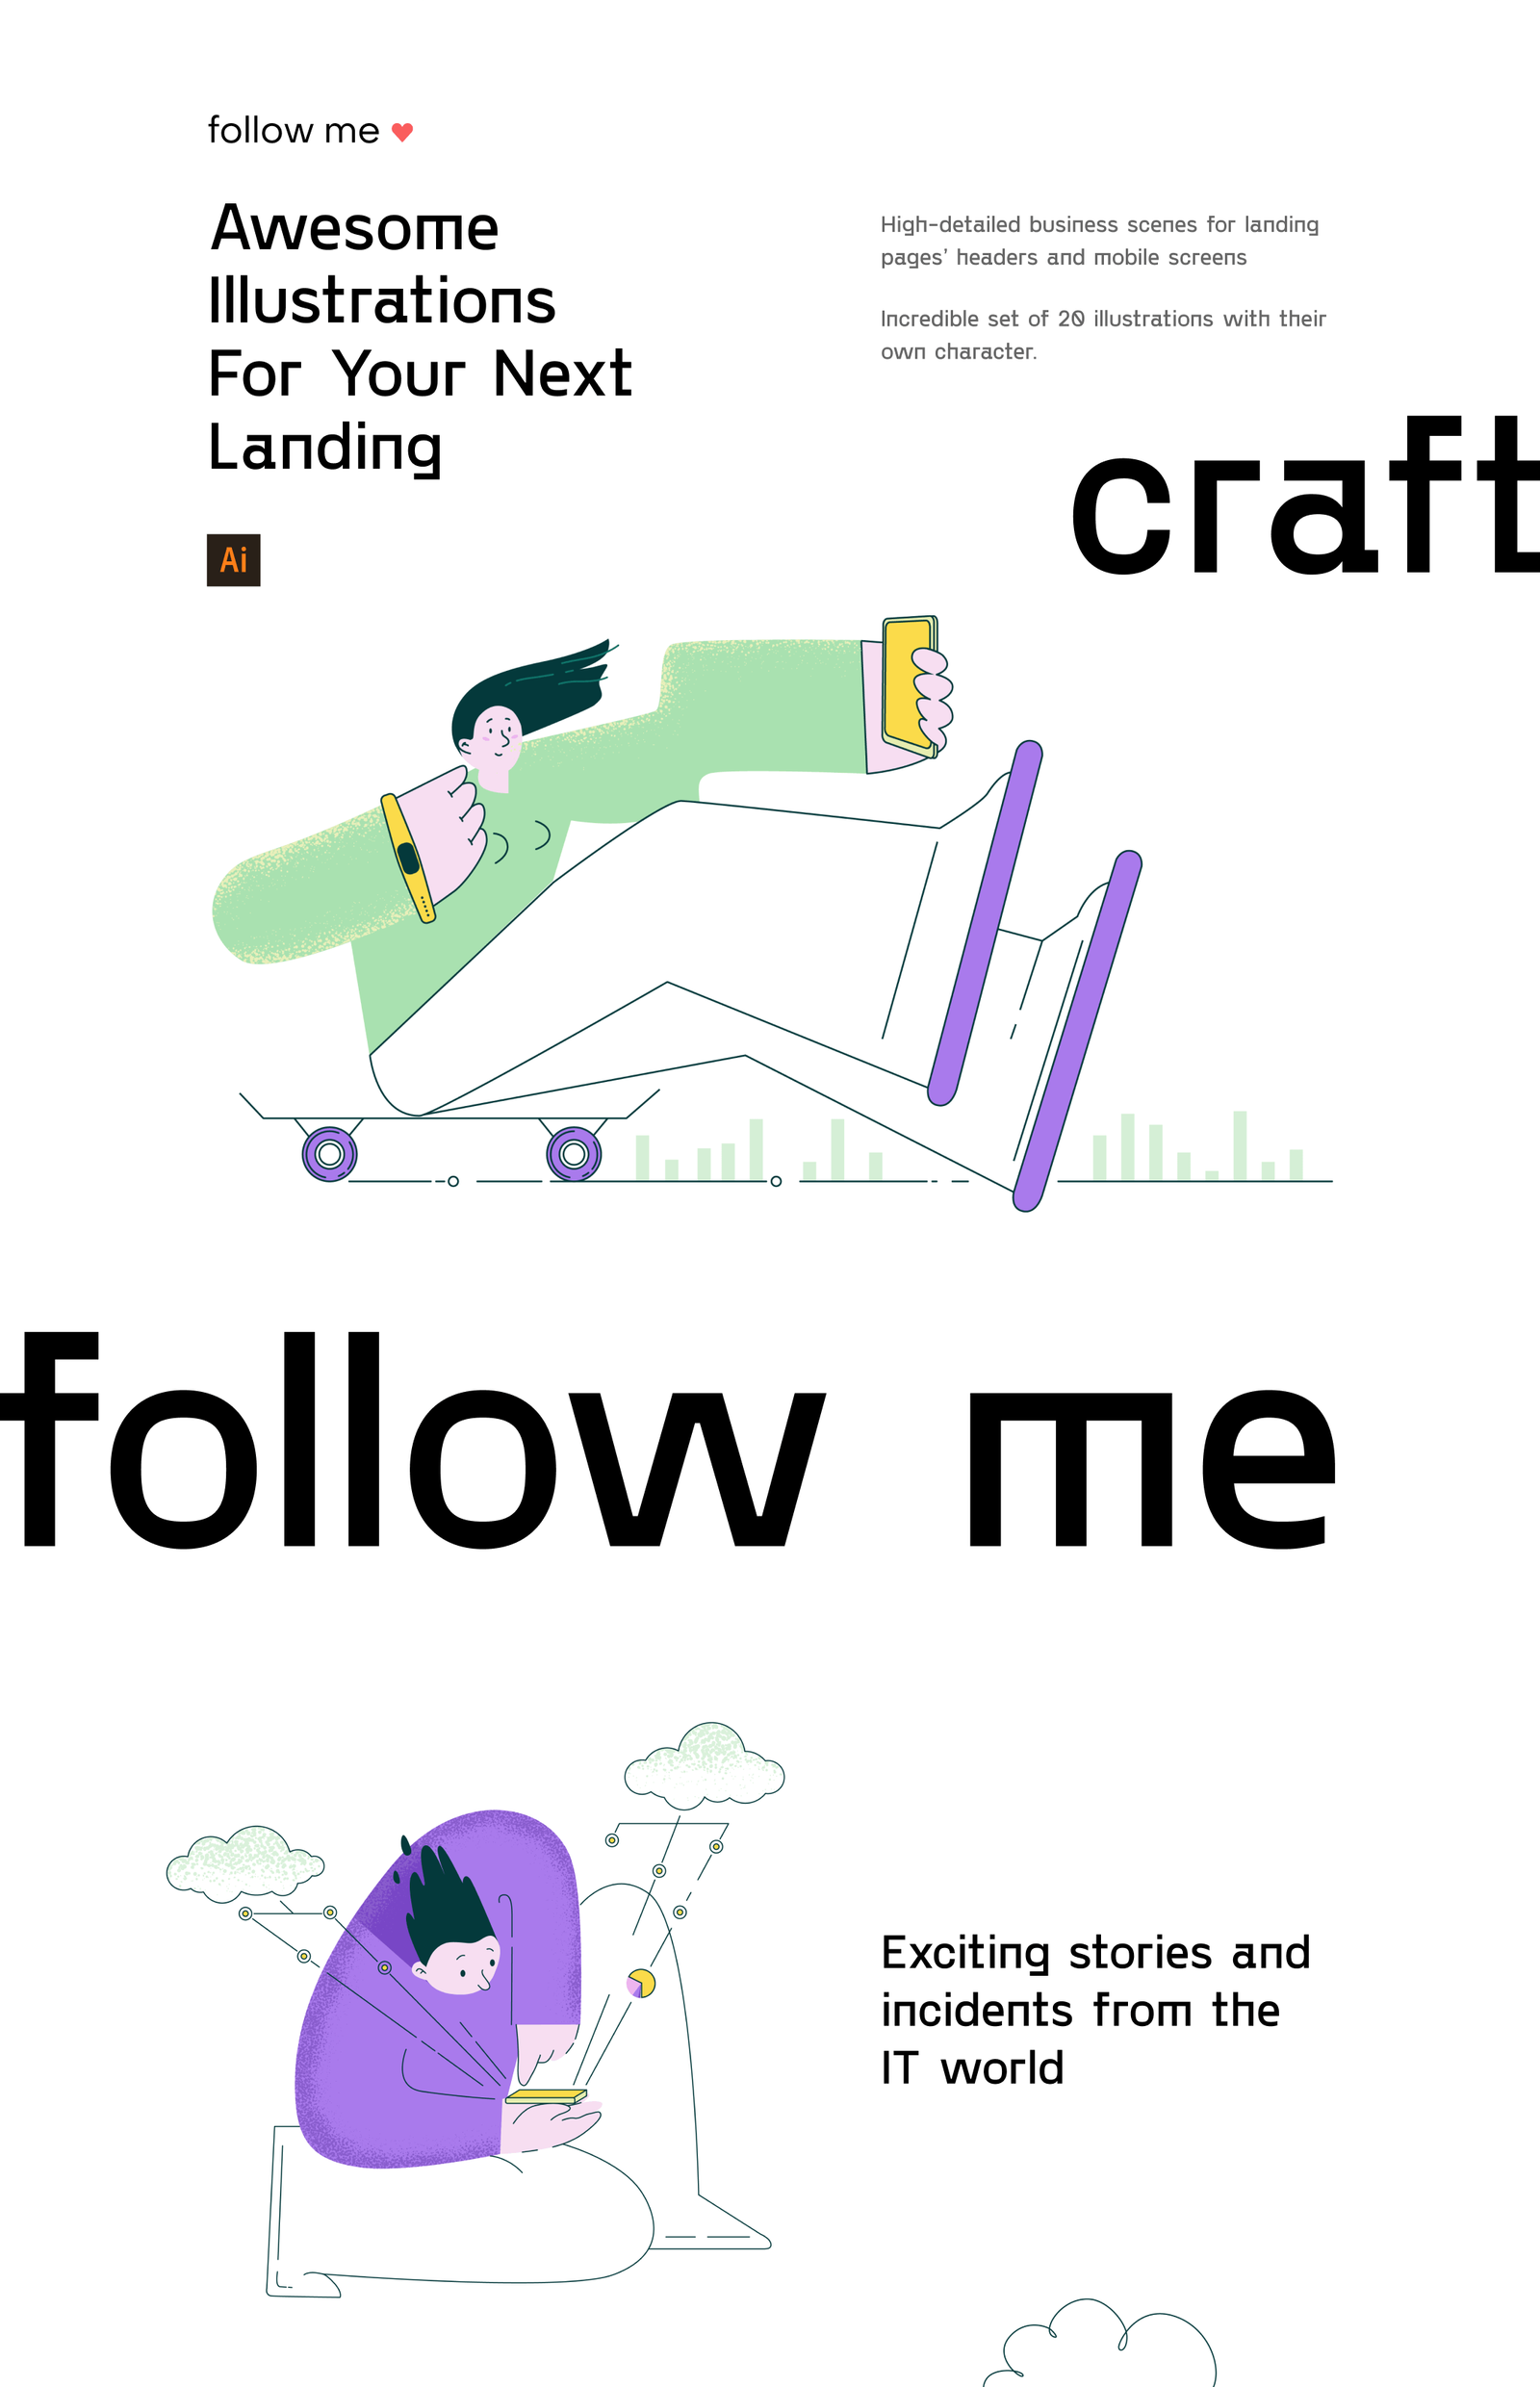 Follow Me Illustrations